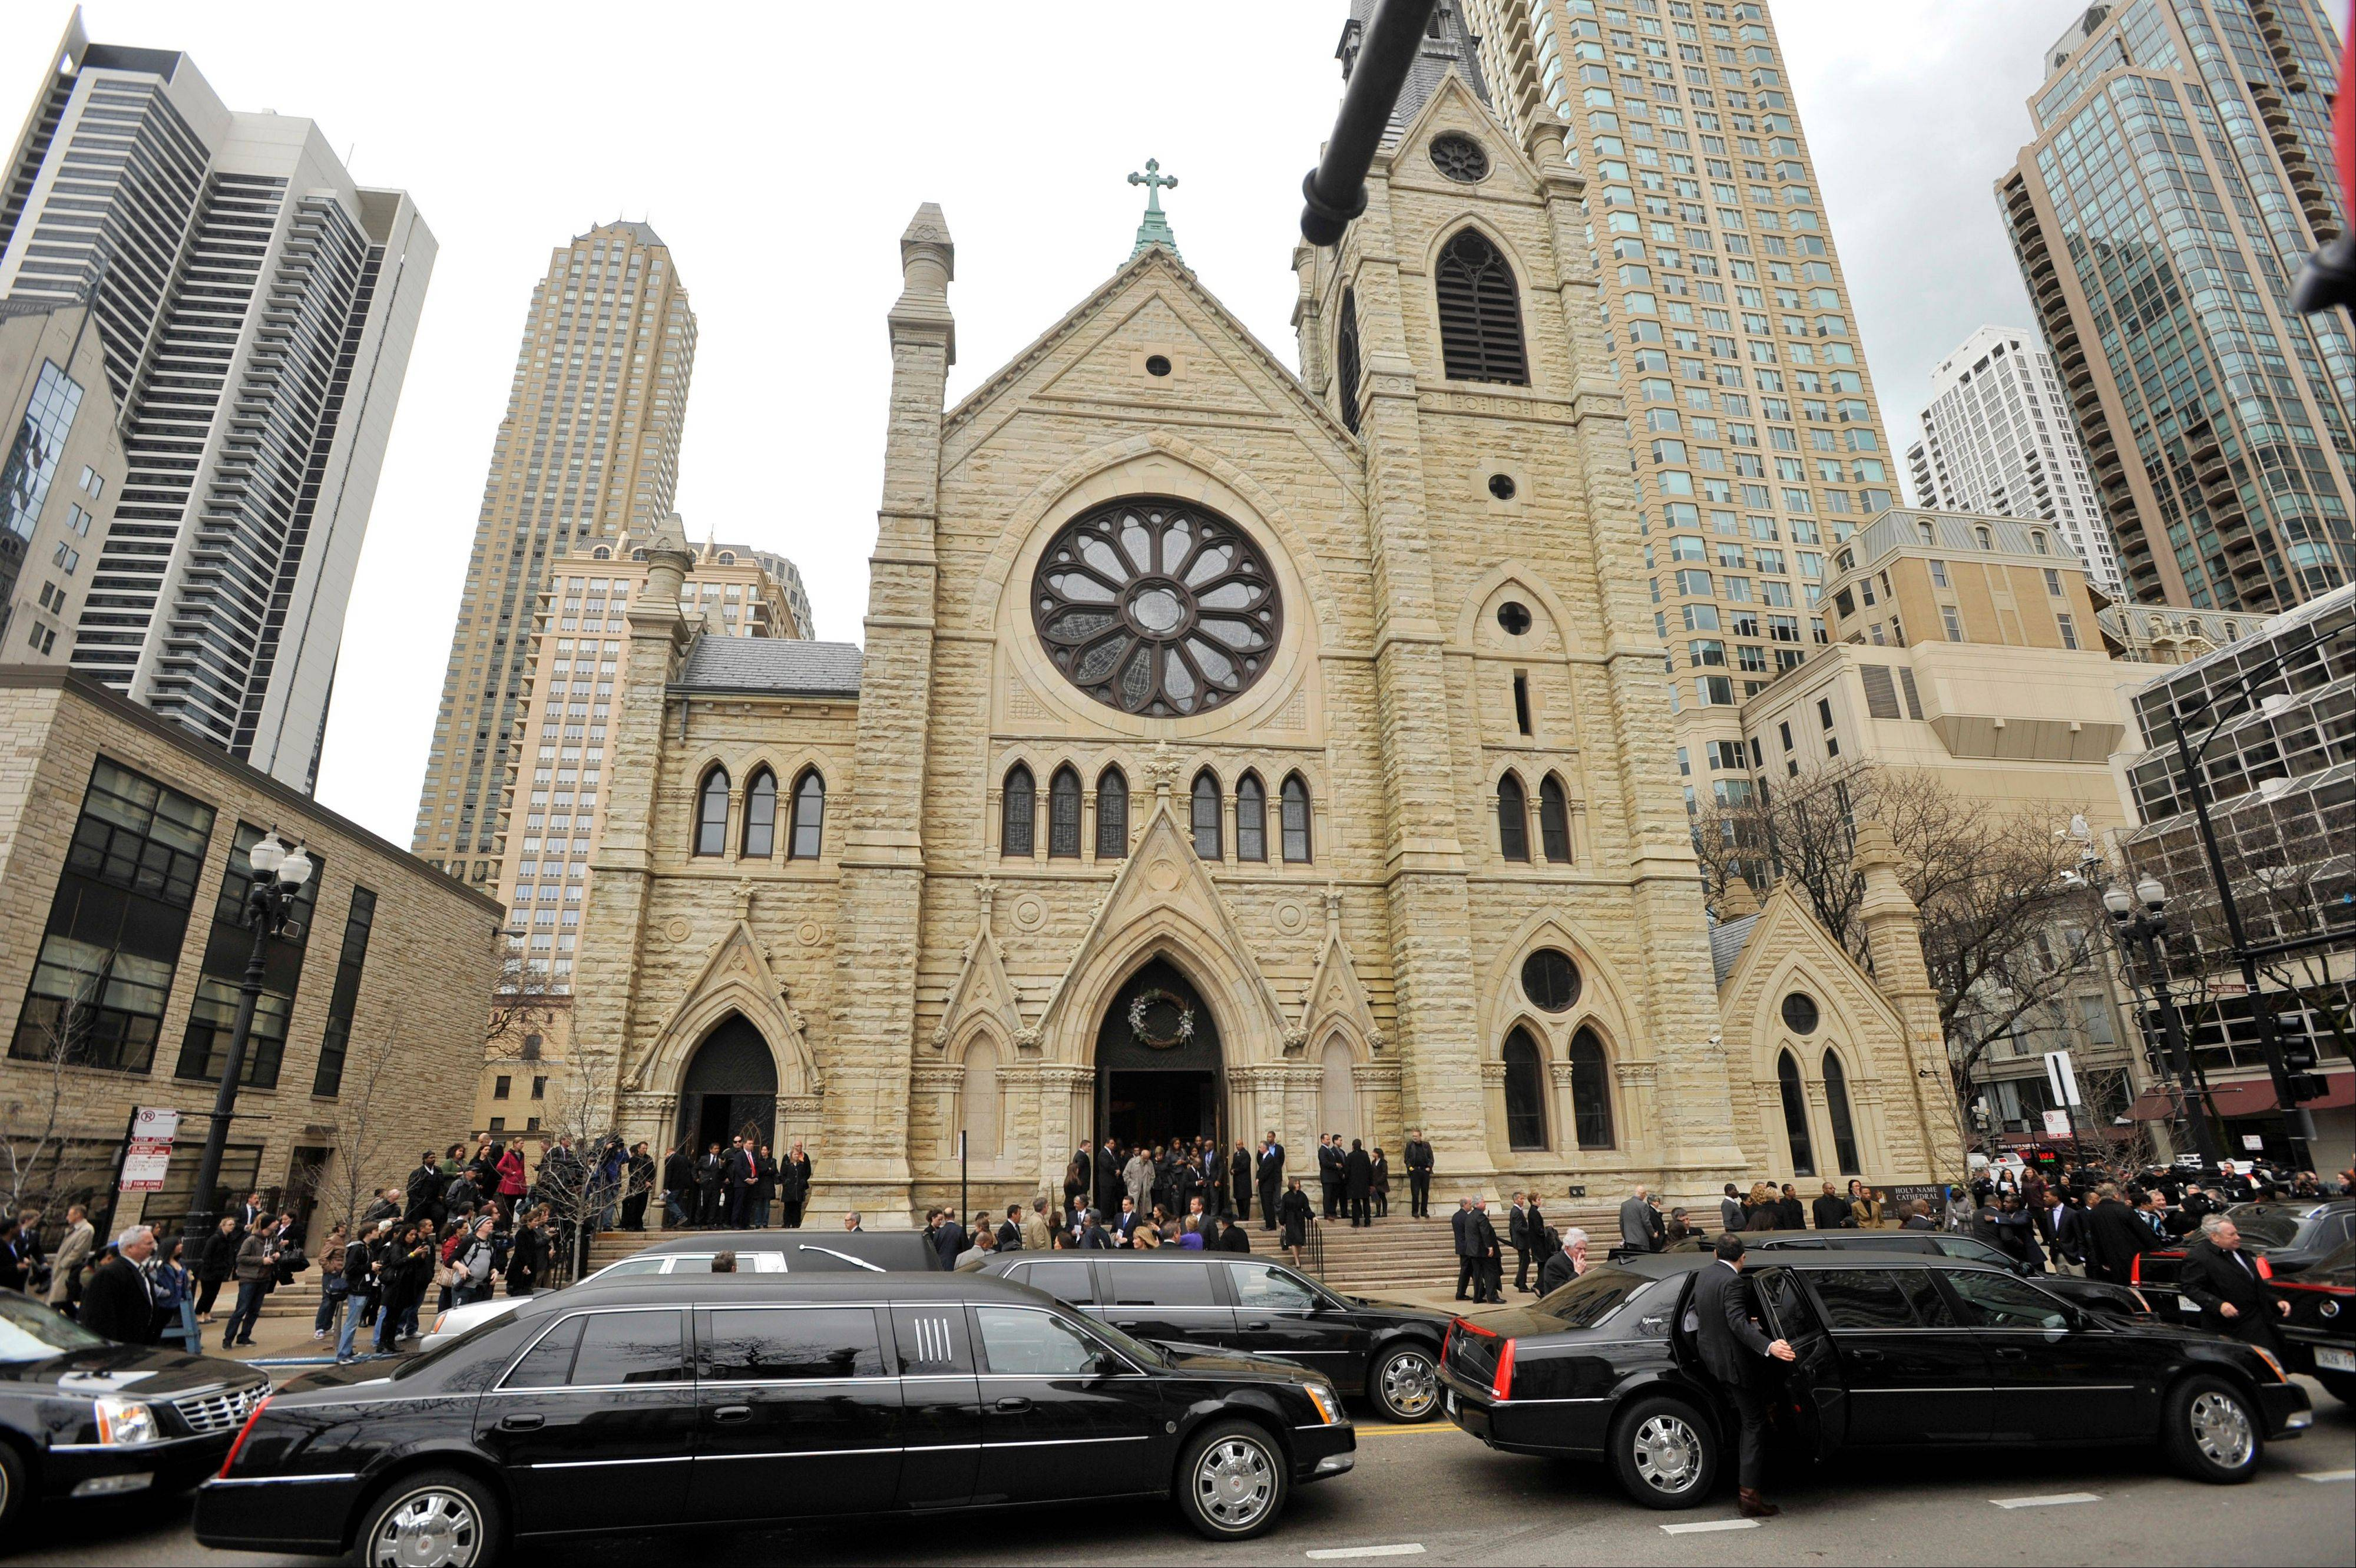 Mourners leave Holy Name Cathedral after film critic Roger Ebert's funeral in Chicago, April 8, 2013. The Pulitzer Prize winning movie reviewer died Thursday, April 4 at age 70 after a long battle with cancer.